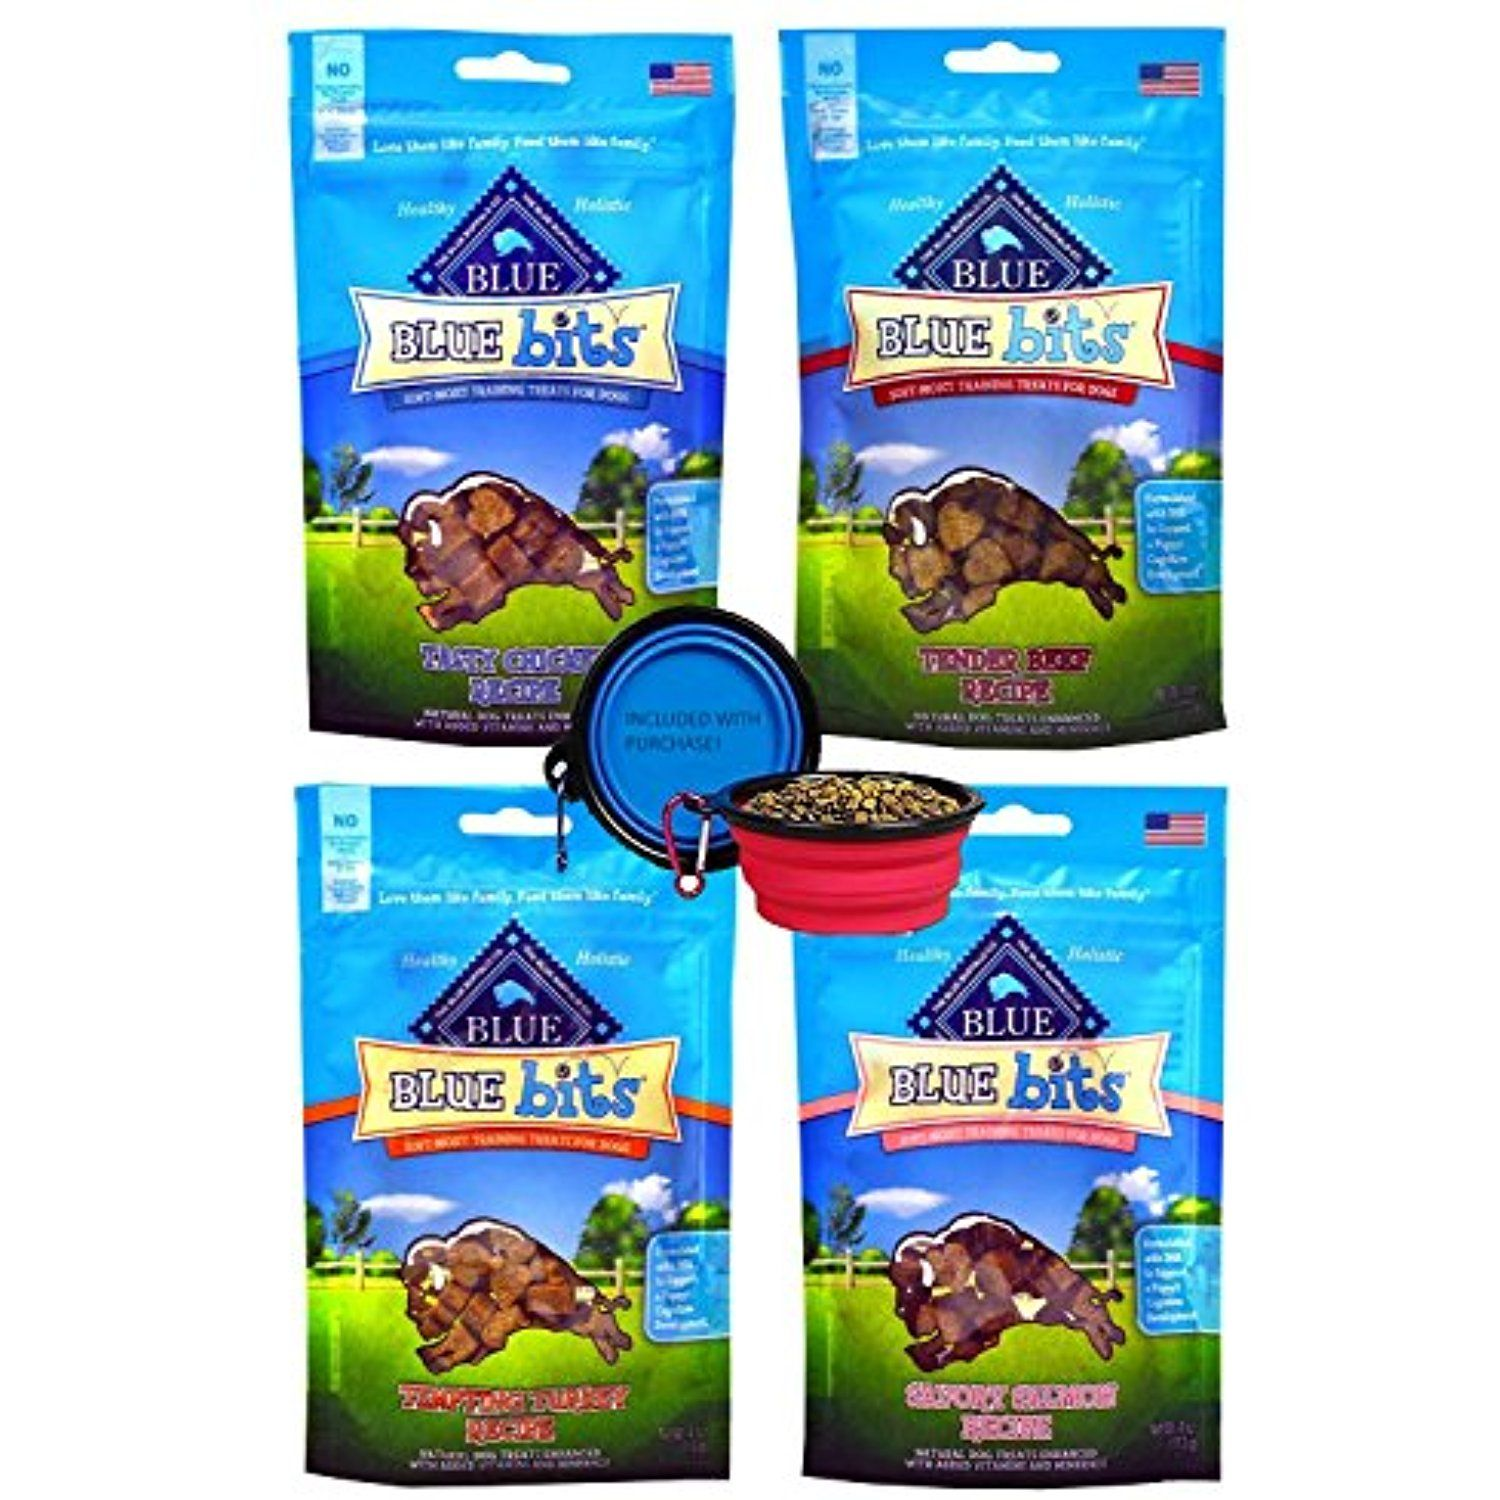 blue buffalo treats blue bits dog treats 4 flavors savory salmon tasty chicken tender beef and tempting tur dog food recipes tender beef holistic healthy pinterest